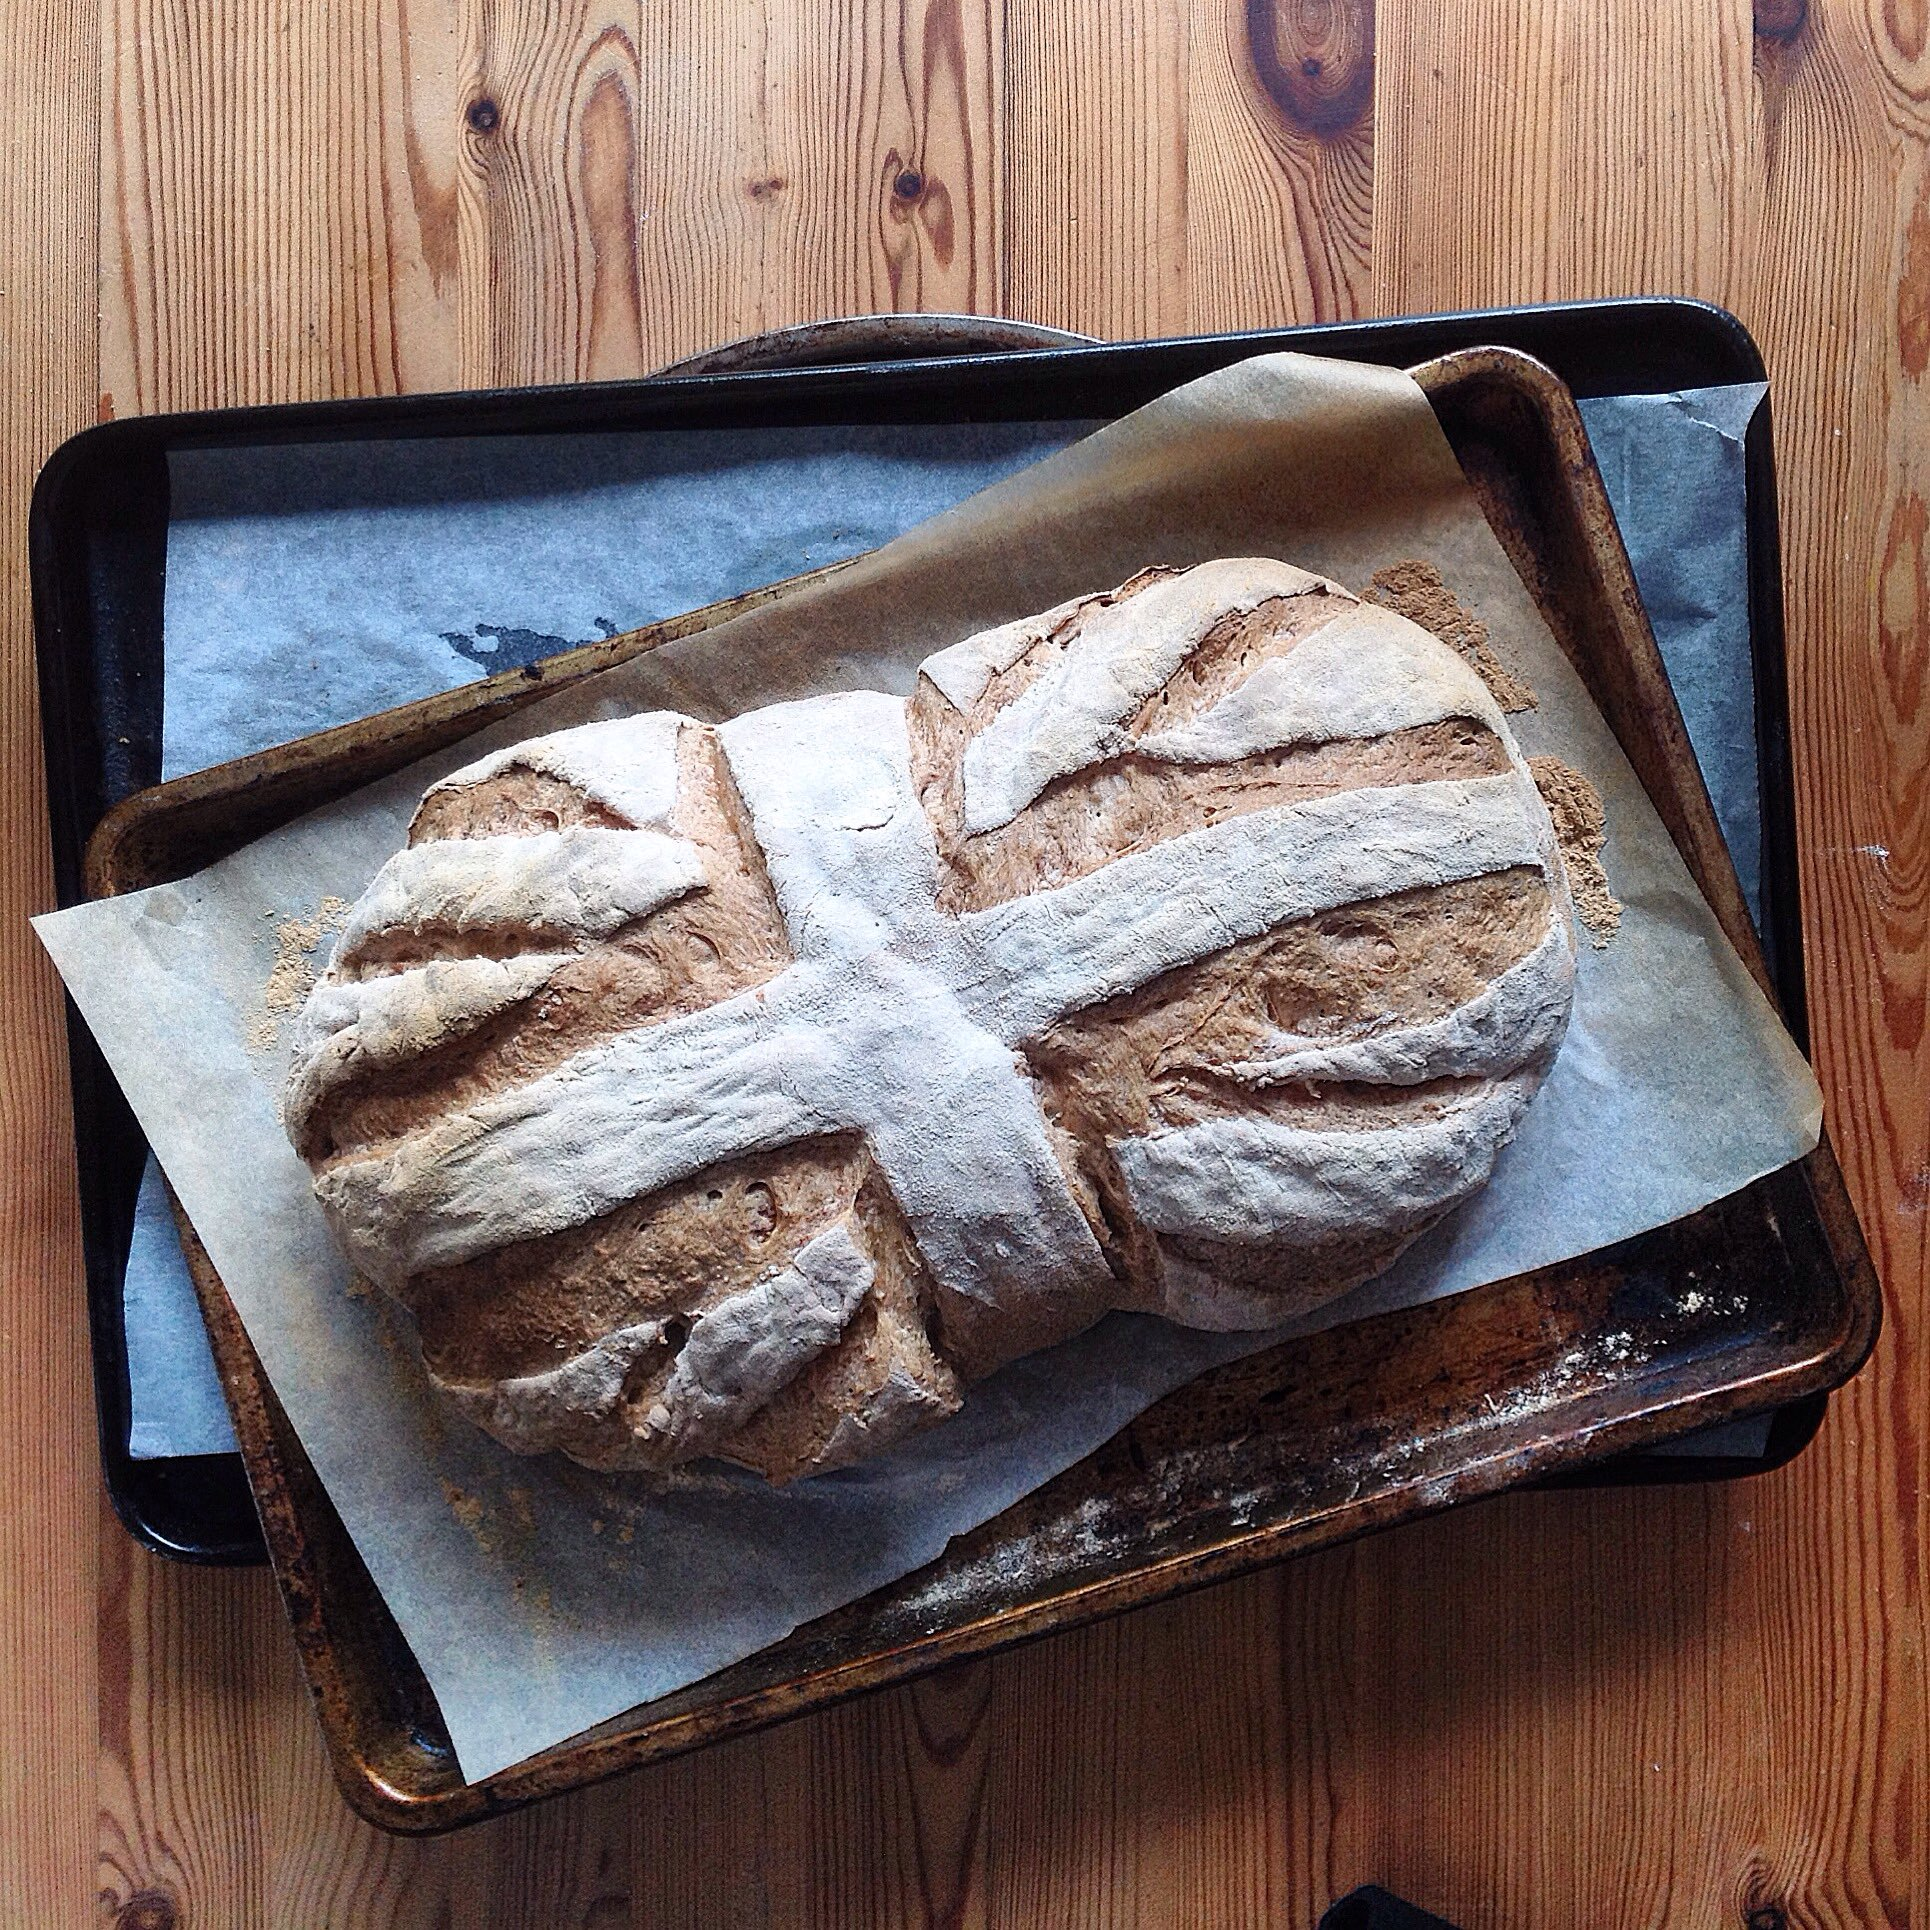 Union Jack slash - this is pretty much my signature bread art! I've posted many loaves with these slash marks on in Instagram